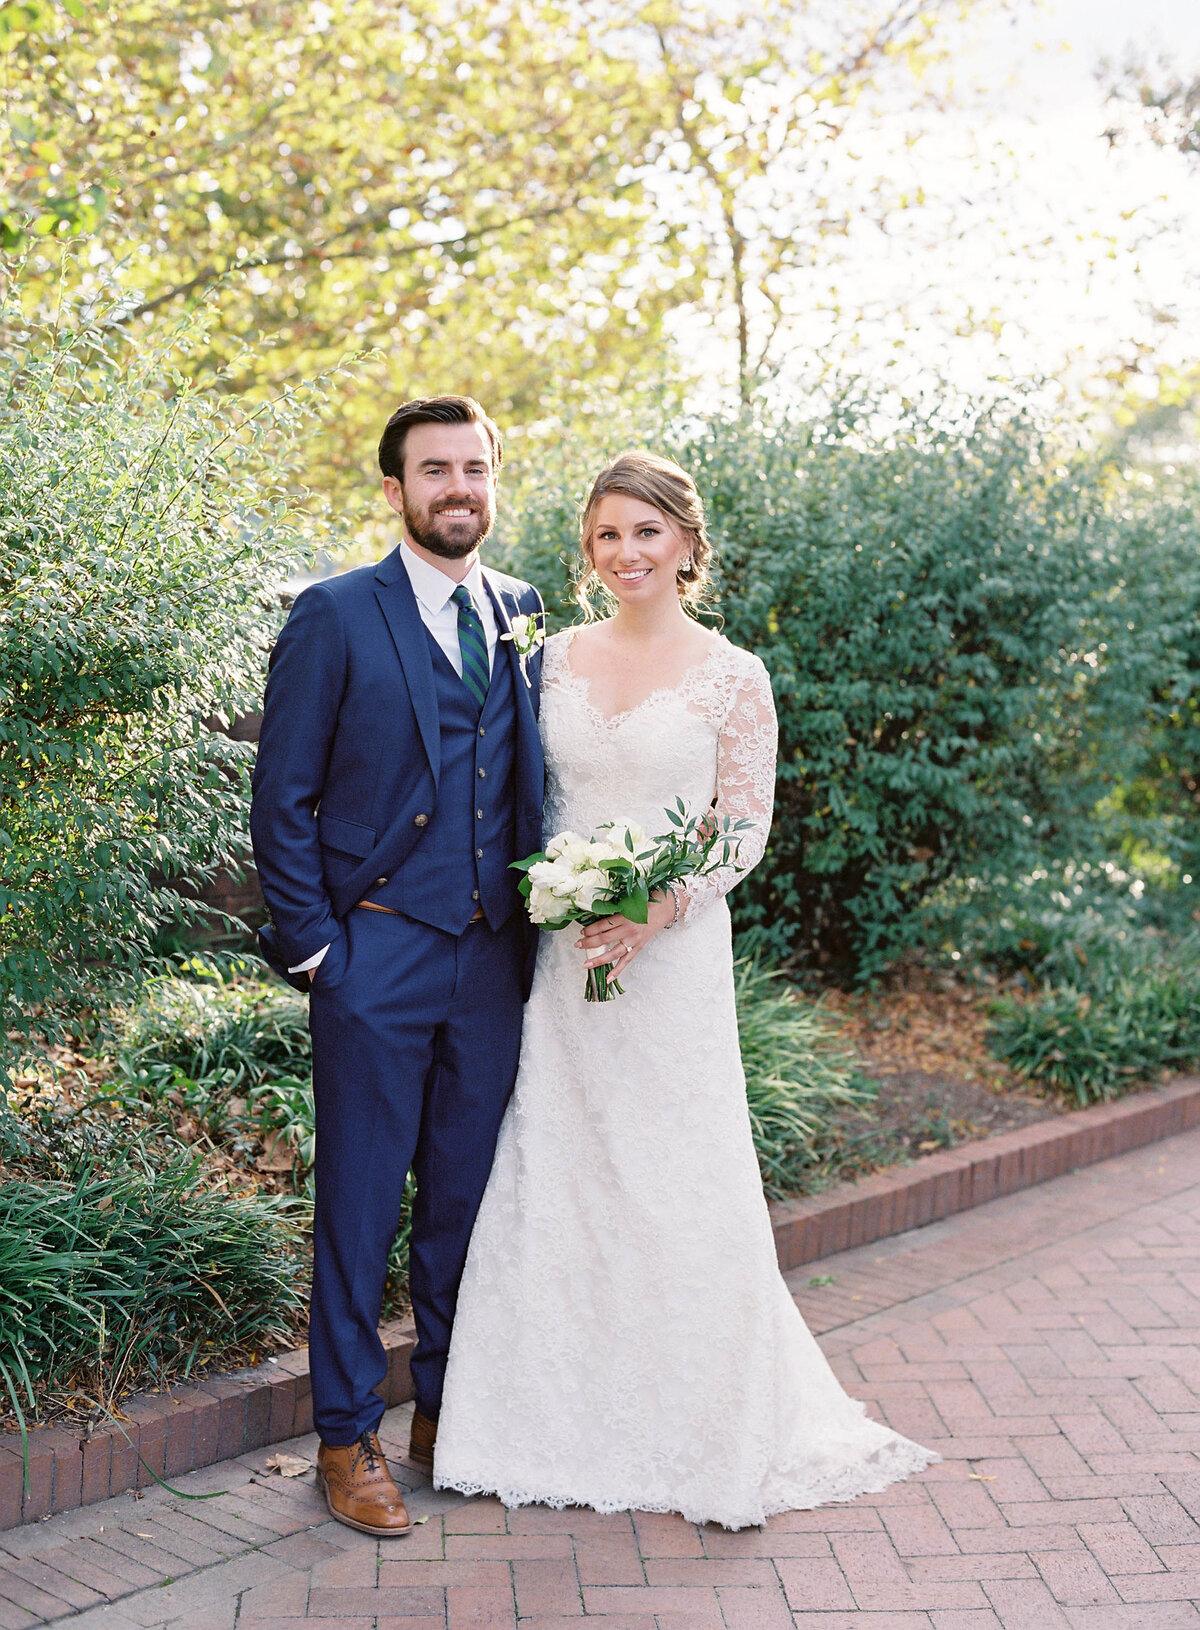 KimStockwell2019StephandMichaelWeddingPreview001